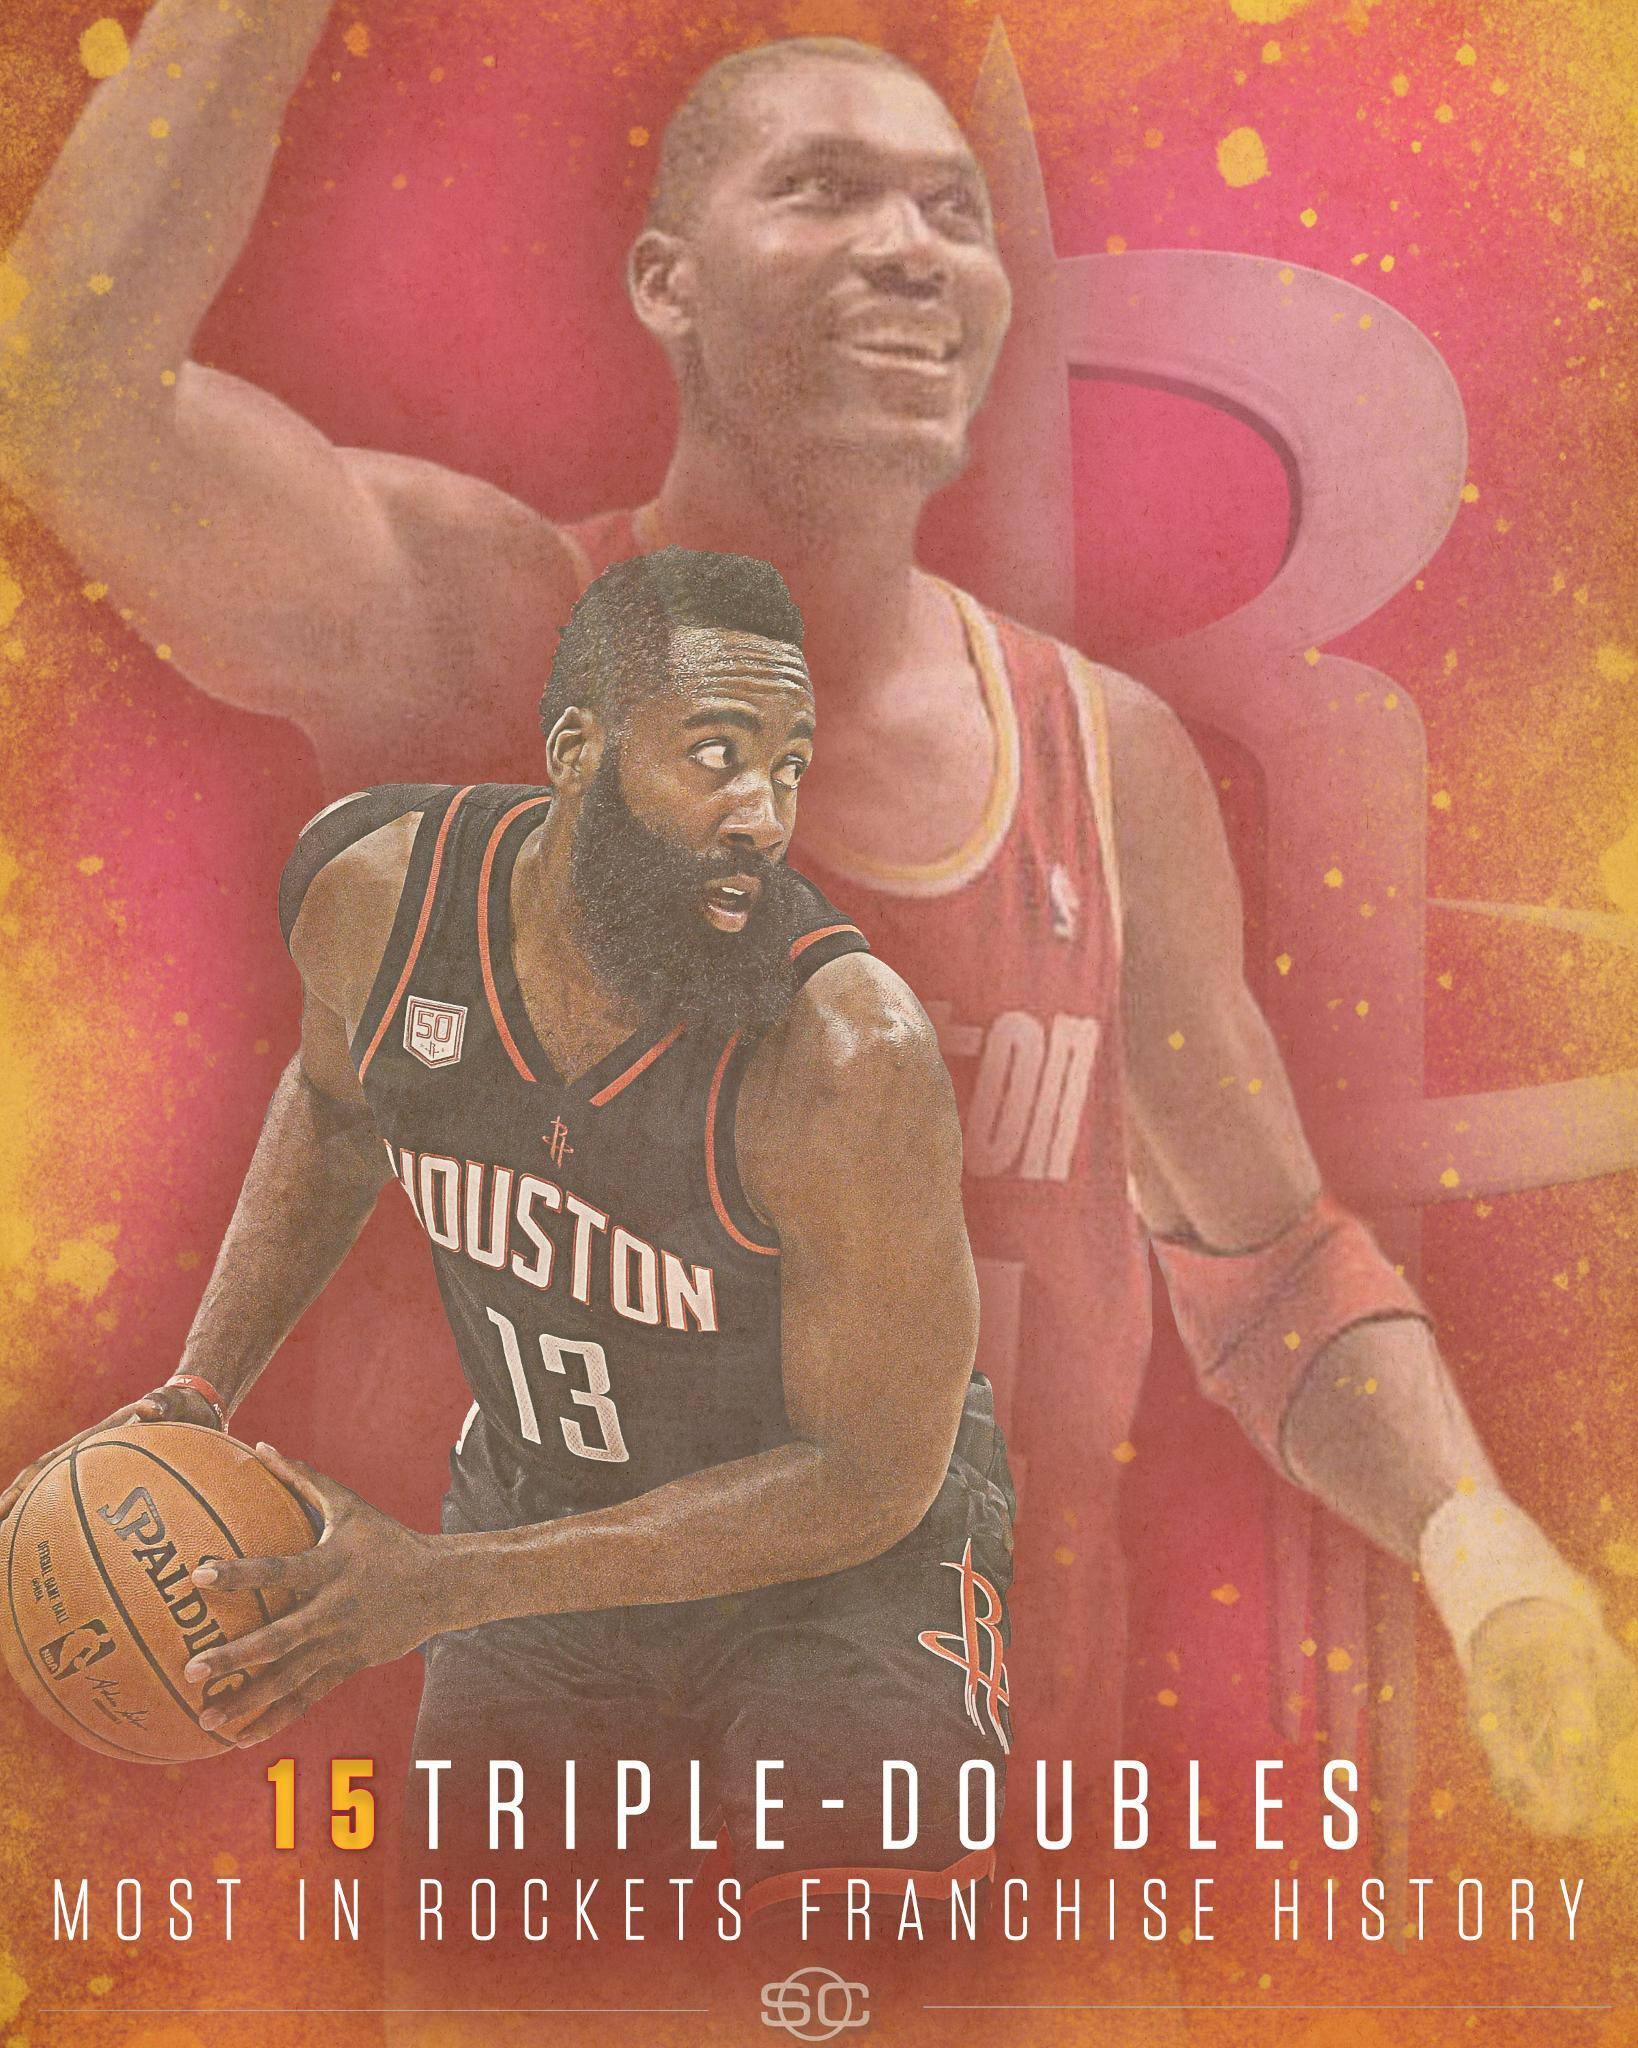 James Harden records his 15th career triple